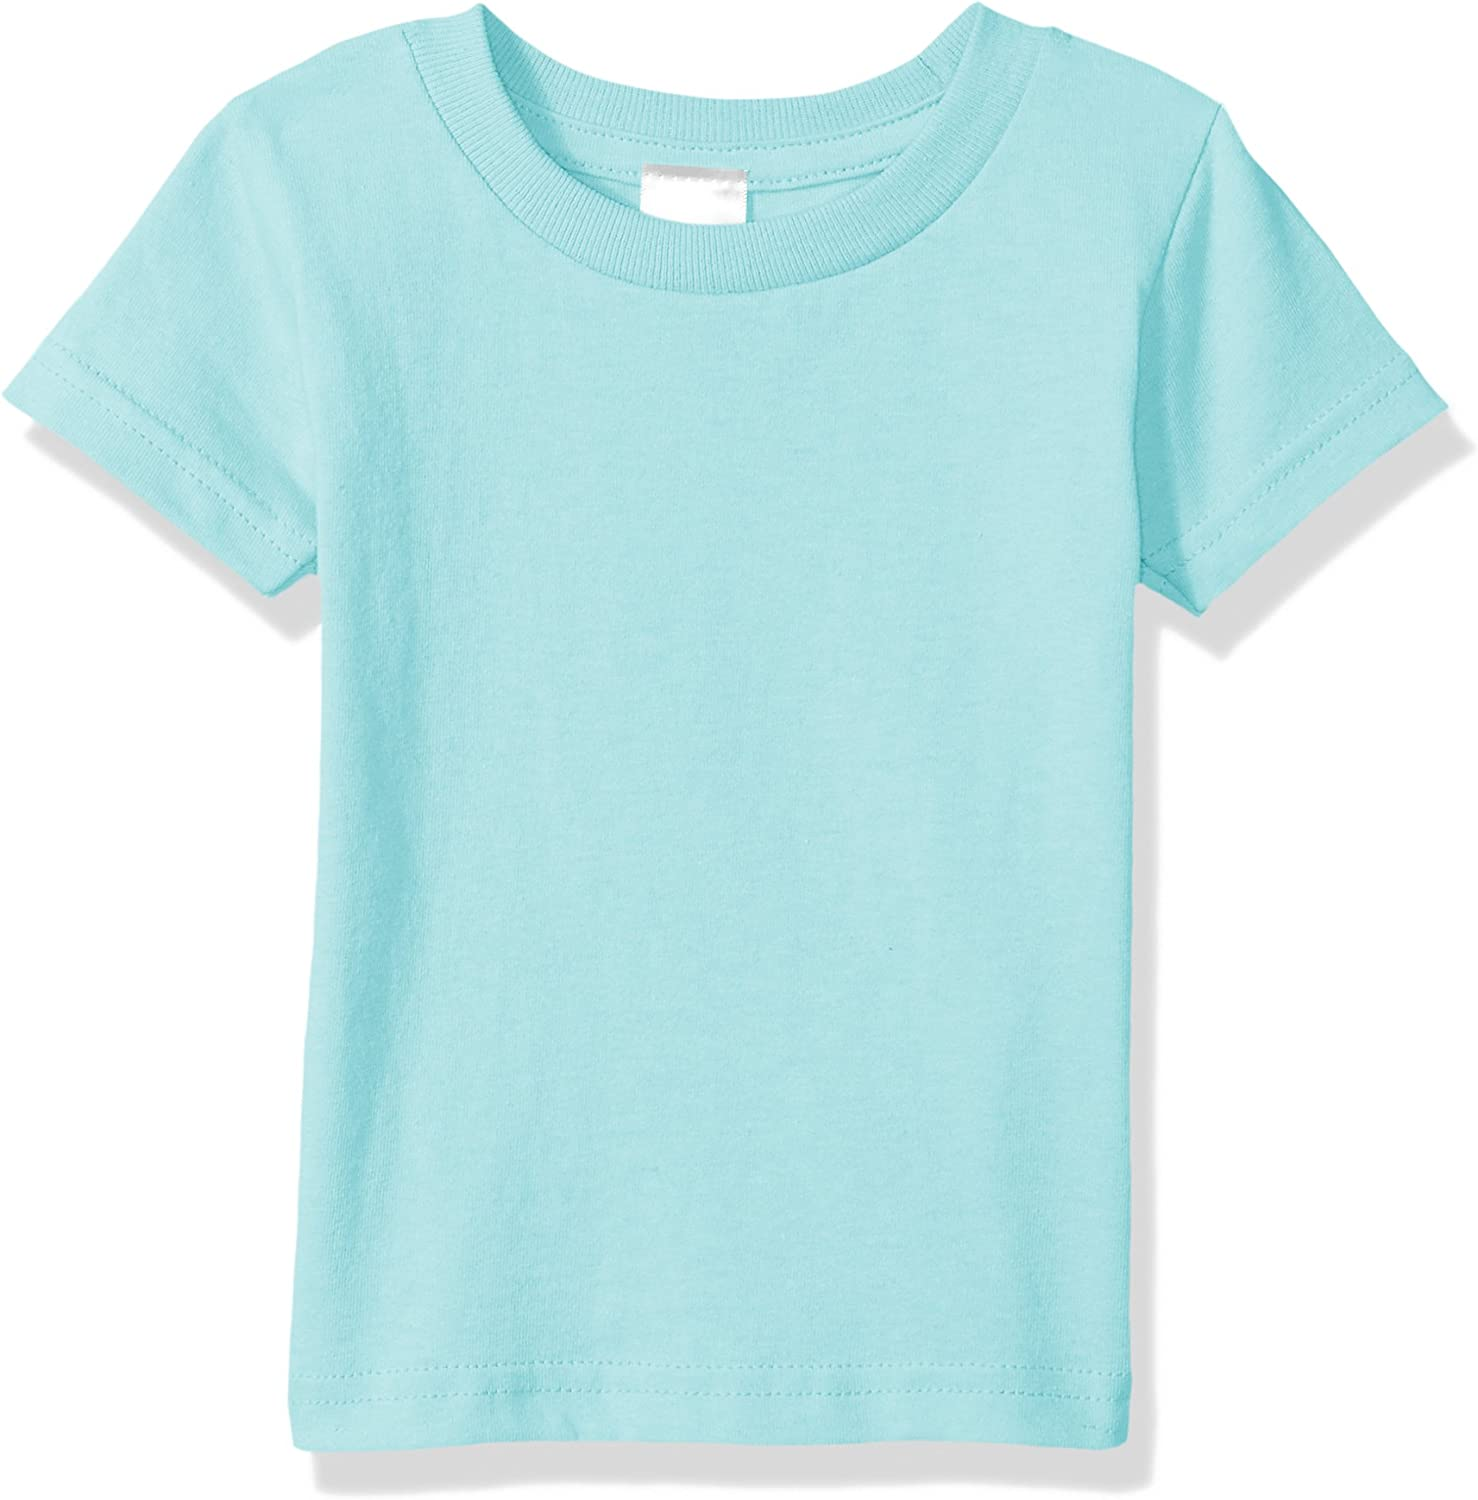 Clementine Baby Girls Infant Soft Cotton Jersey T-Shirt